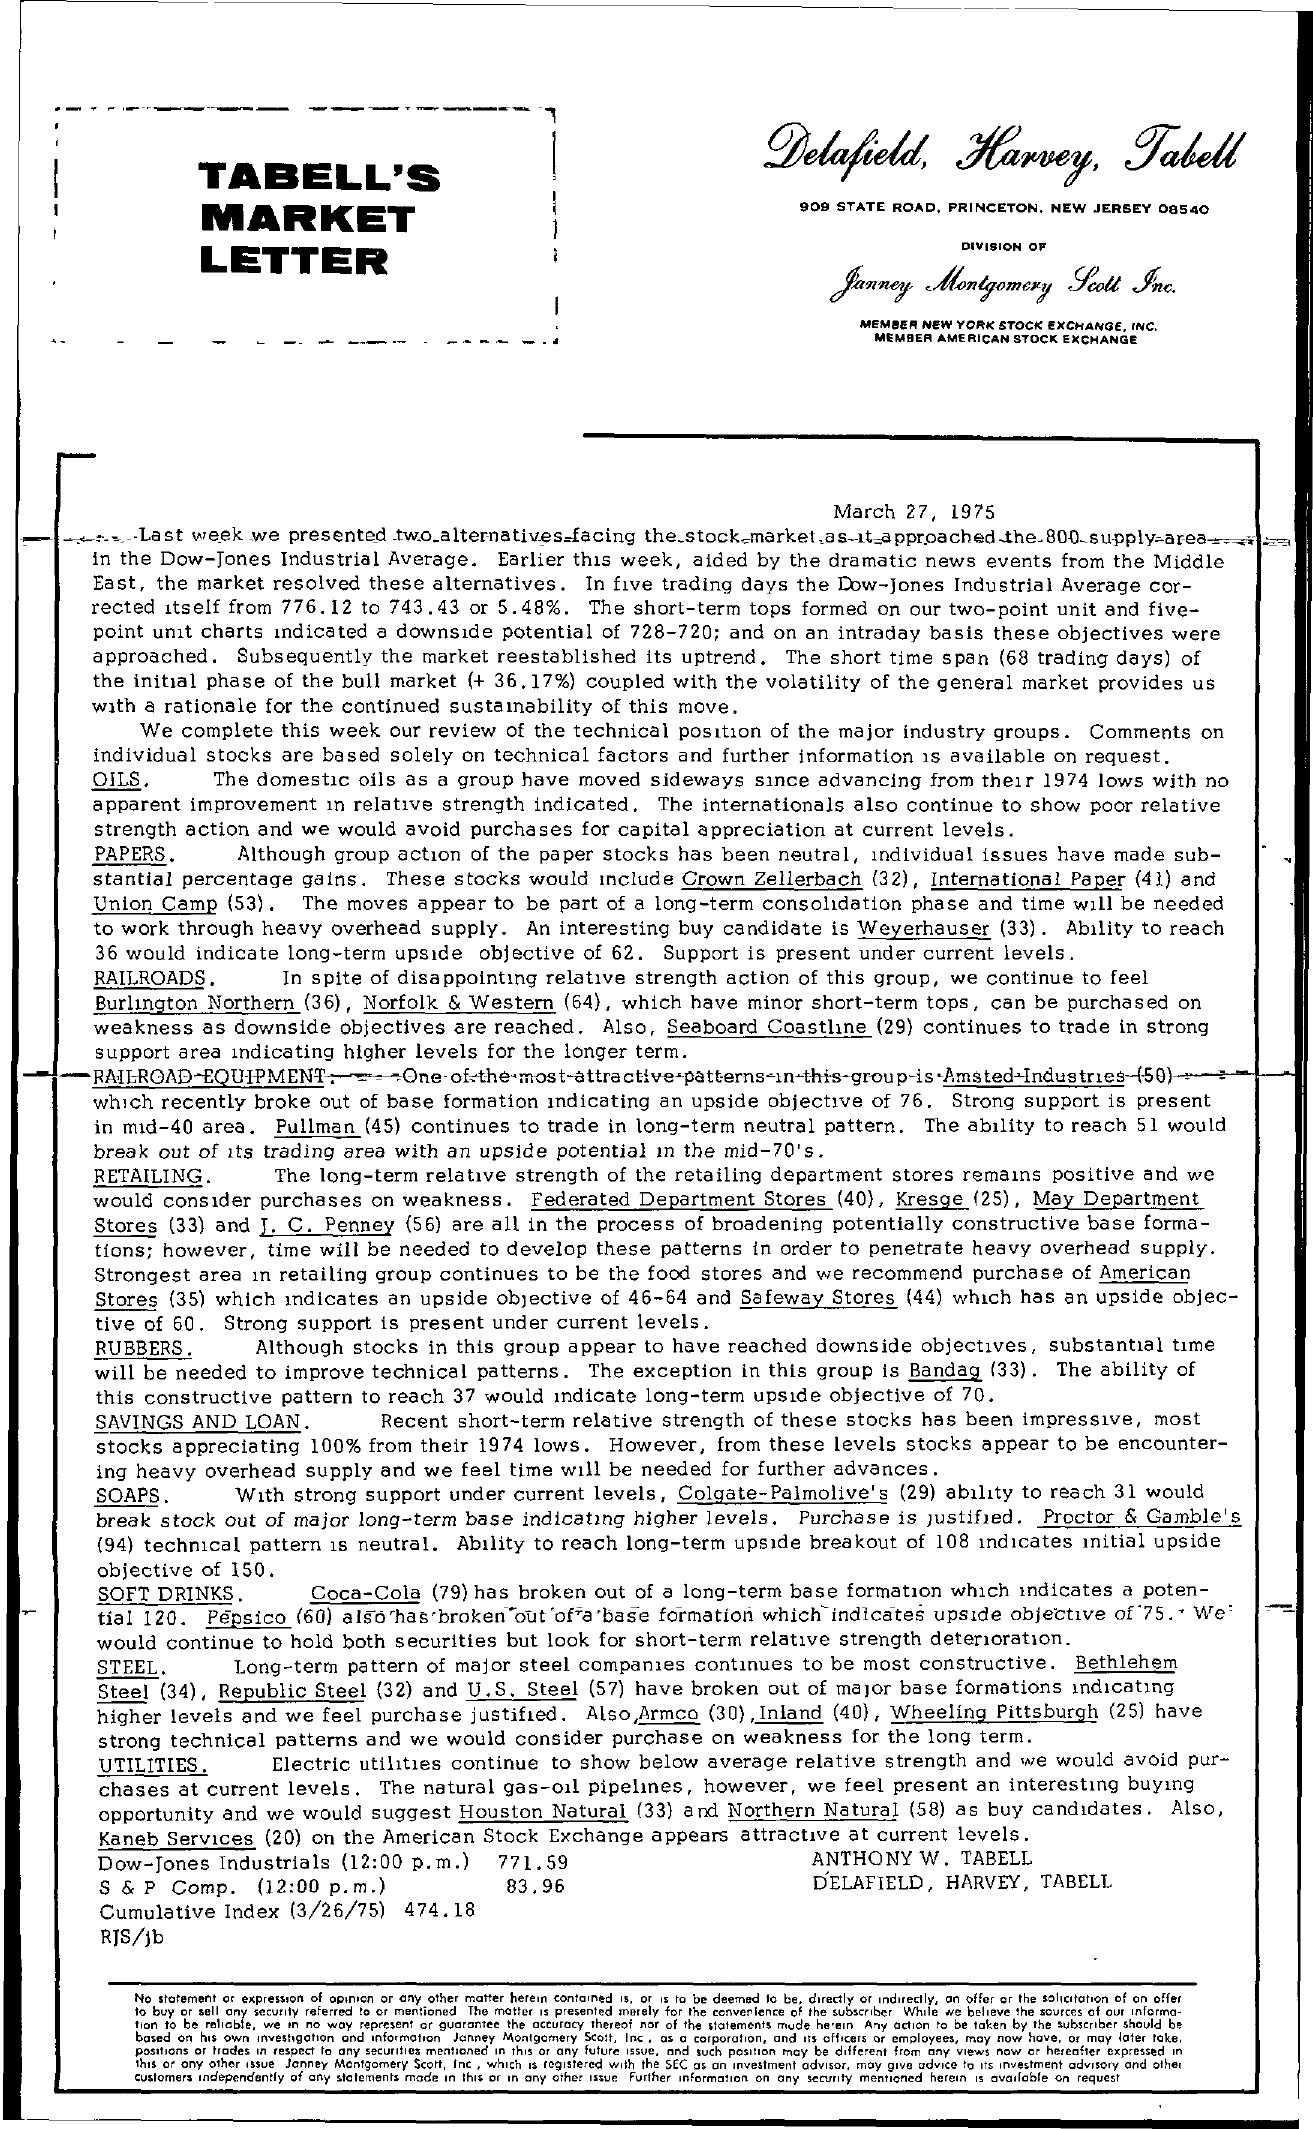 Tabell's Market Letter - March 27, 1975